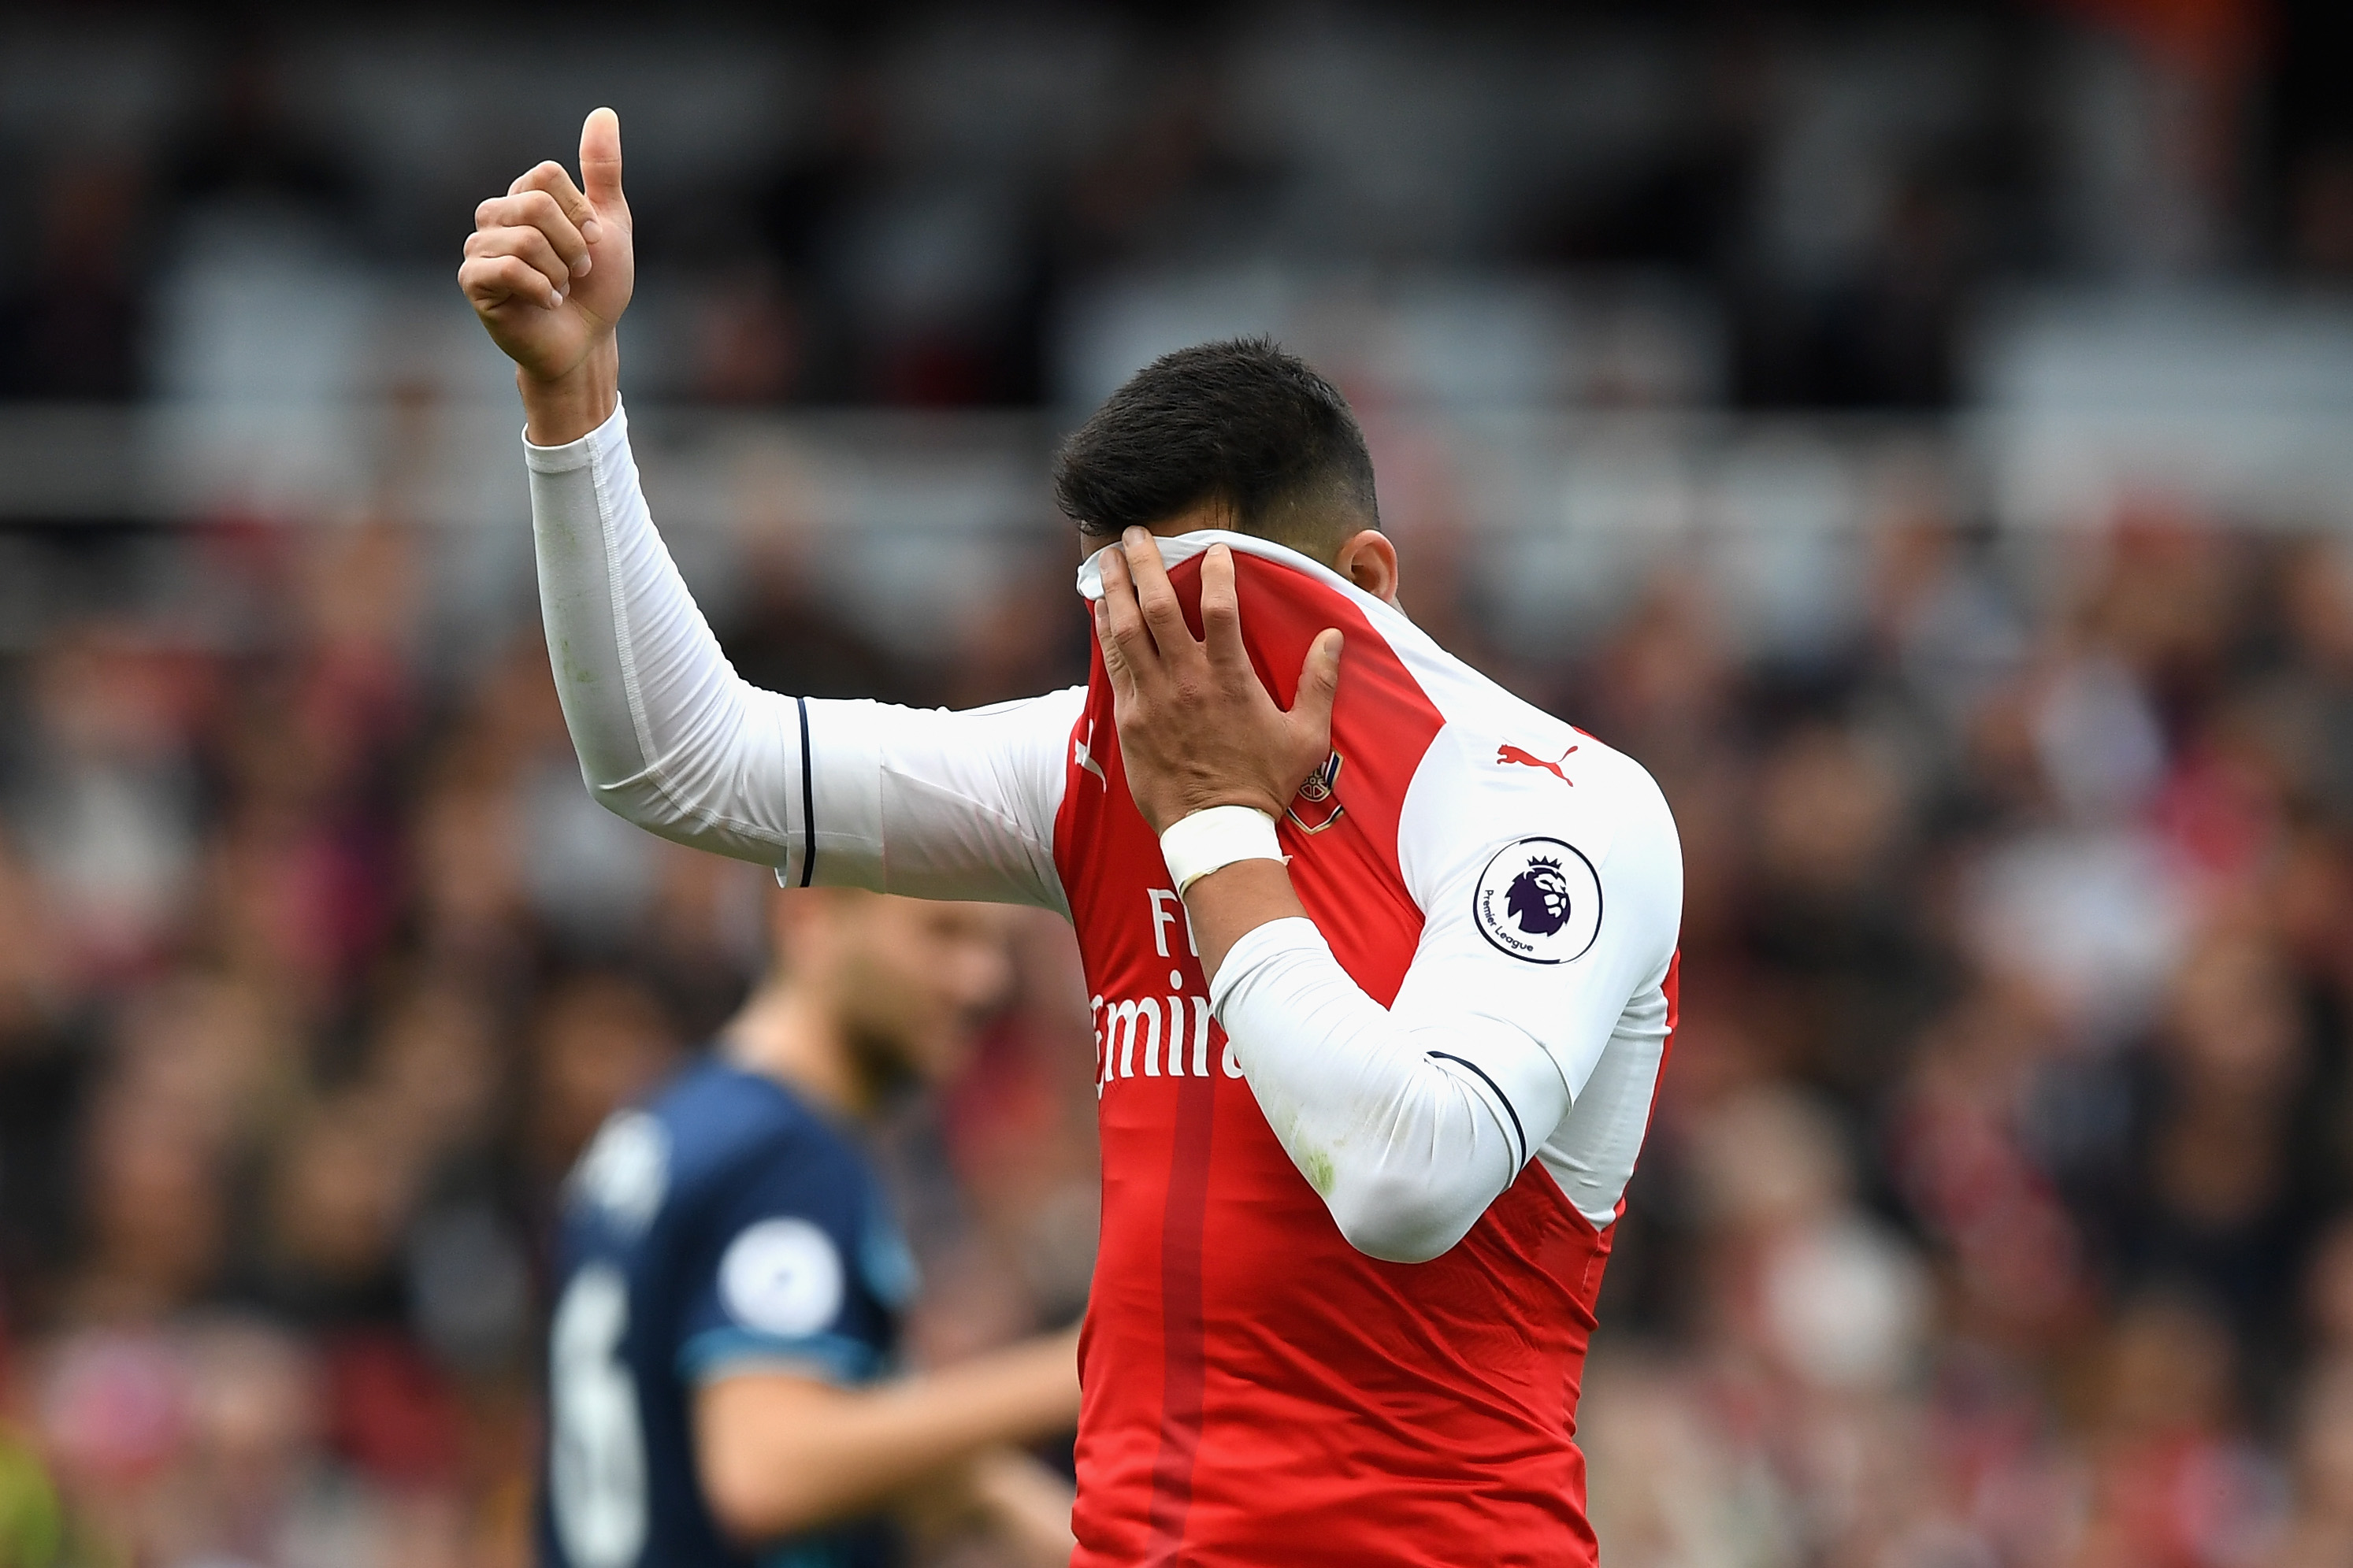 Arsenal 0-0 Middlesbrough Player Ratings: Mesut Ozil and co fail to perform as Adama Traore impresses